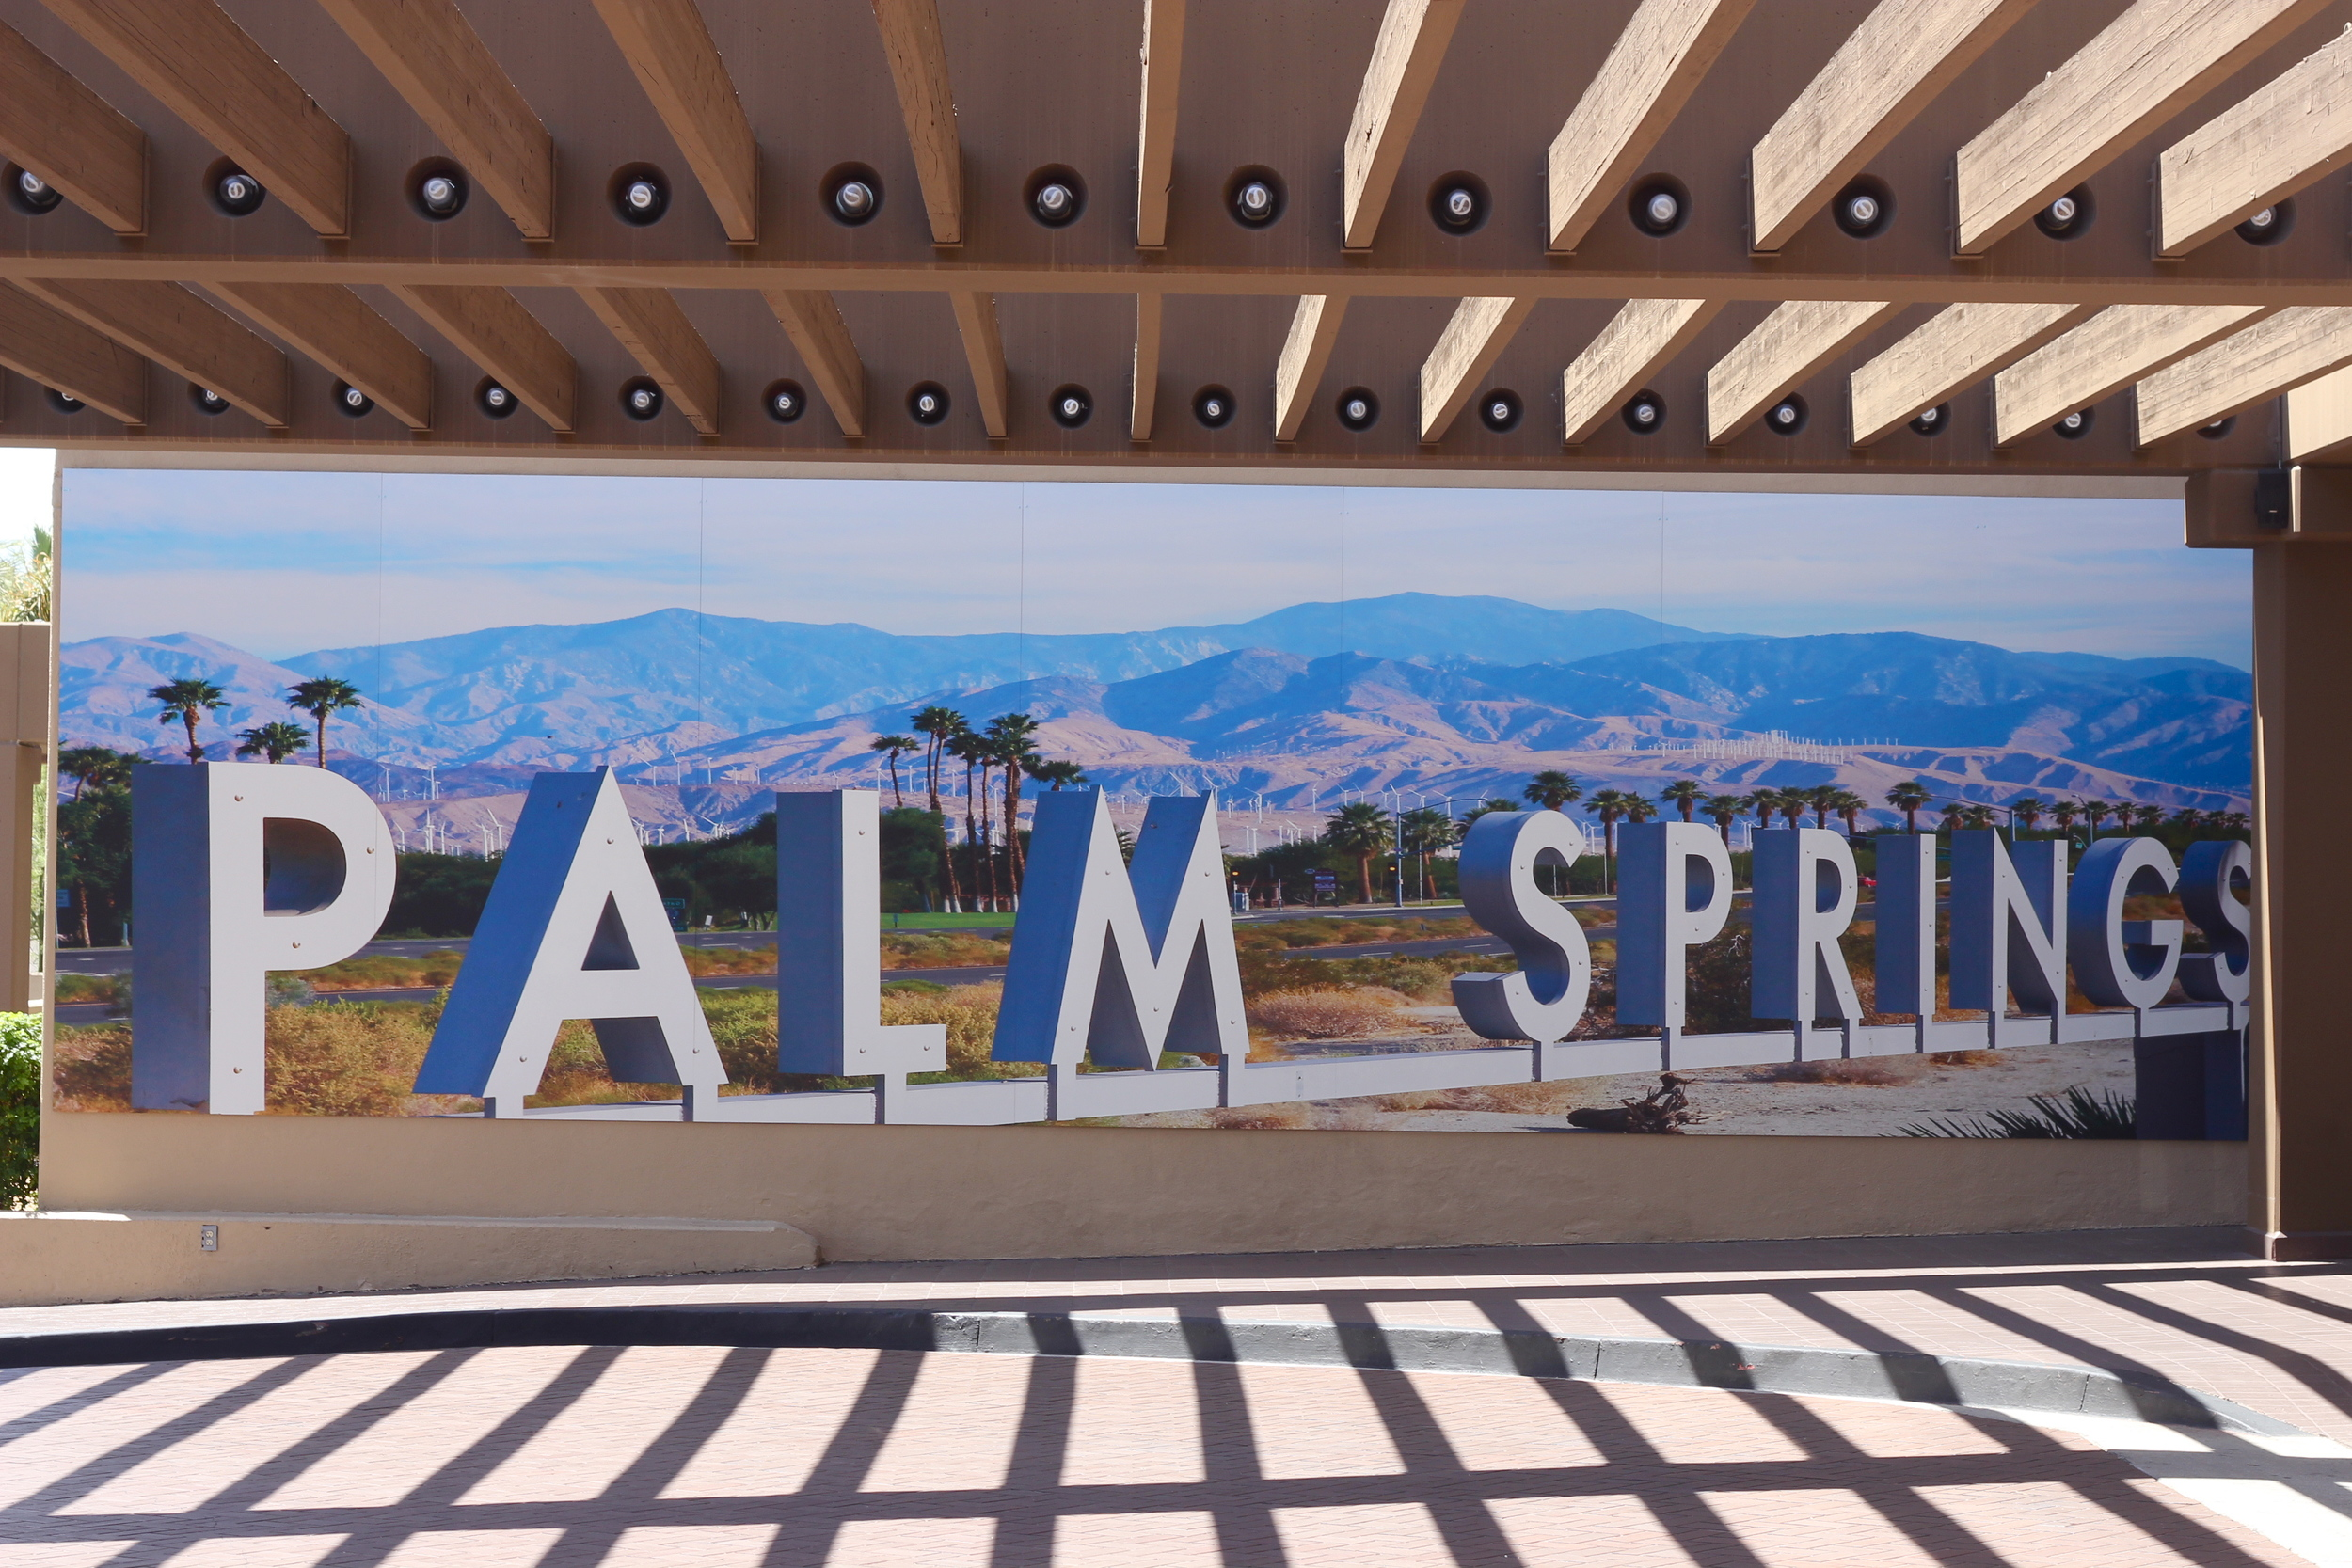 hyatt-palm-springs-mural.jpg